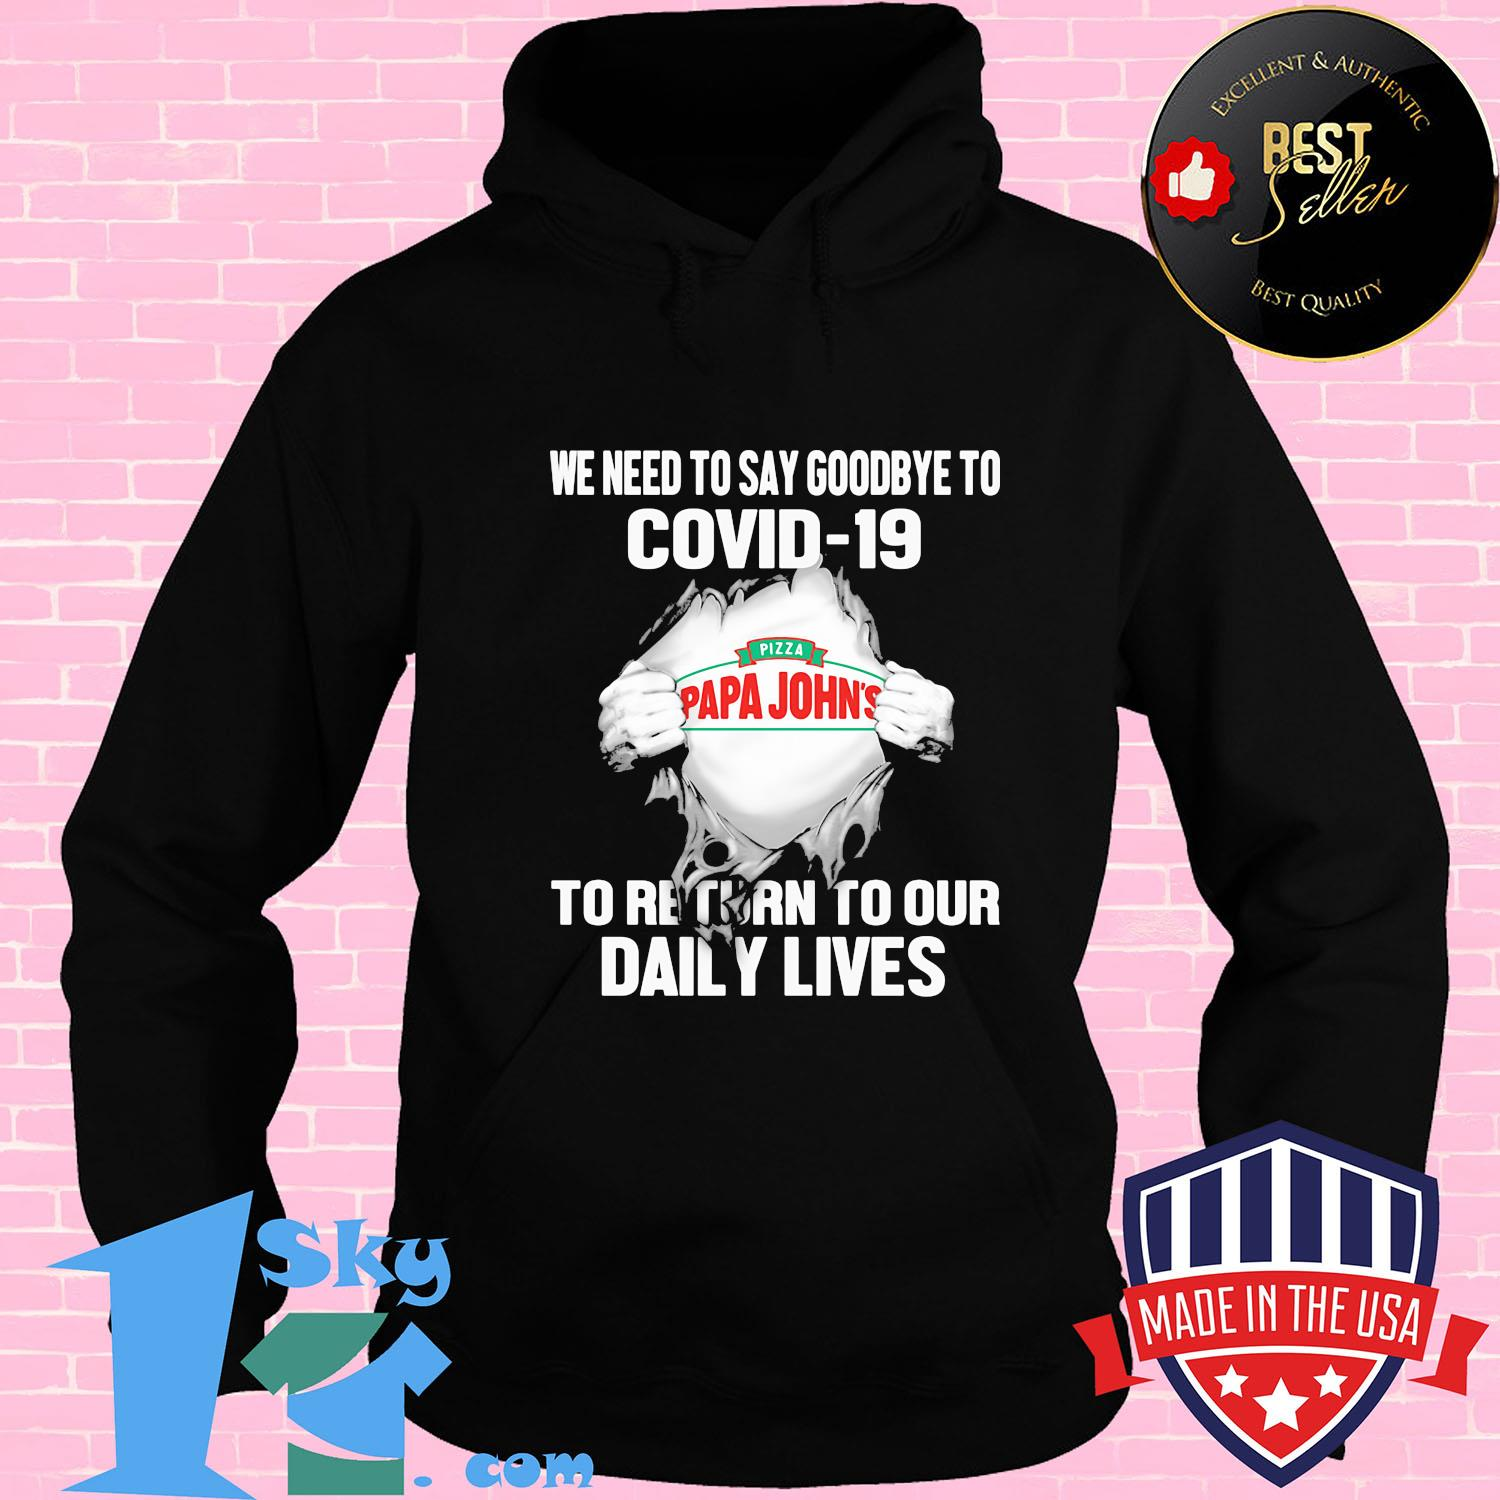 pizza papa johns we need to say goodbye to covid 19 to return to our daily lives hands shirt Hoodie - Shop trending - We offer all trend shirts - 1SkyTee